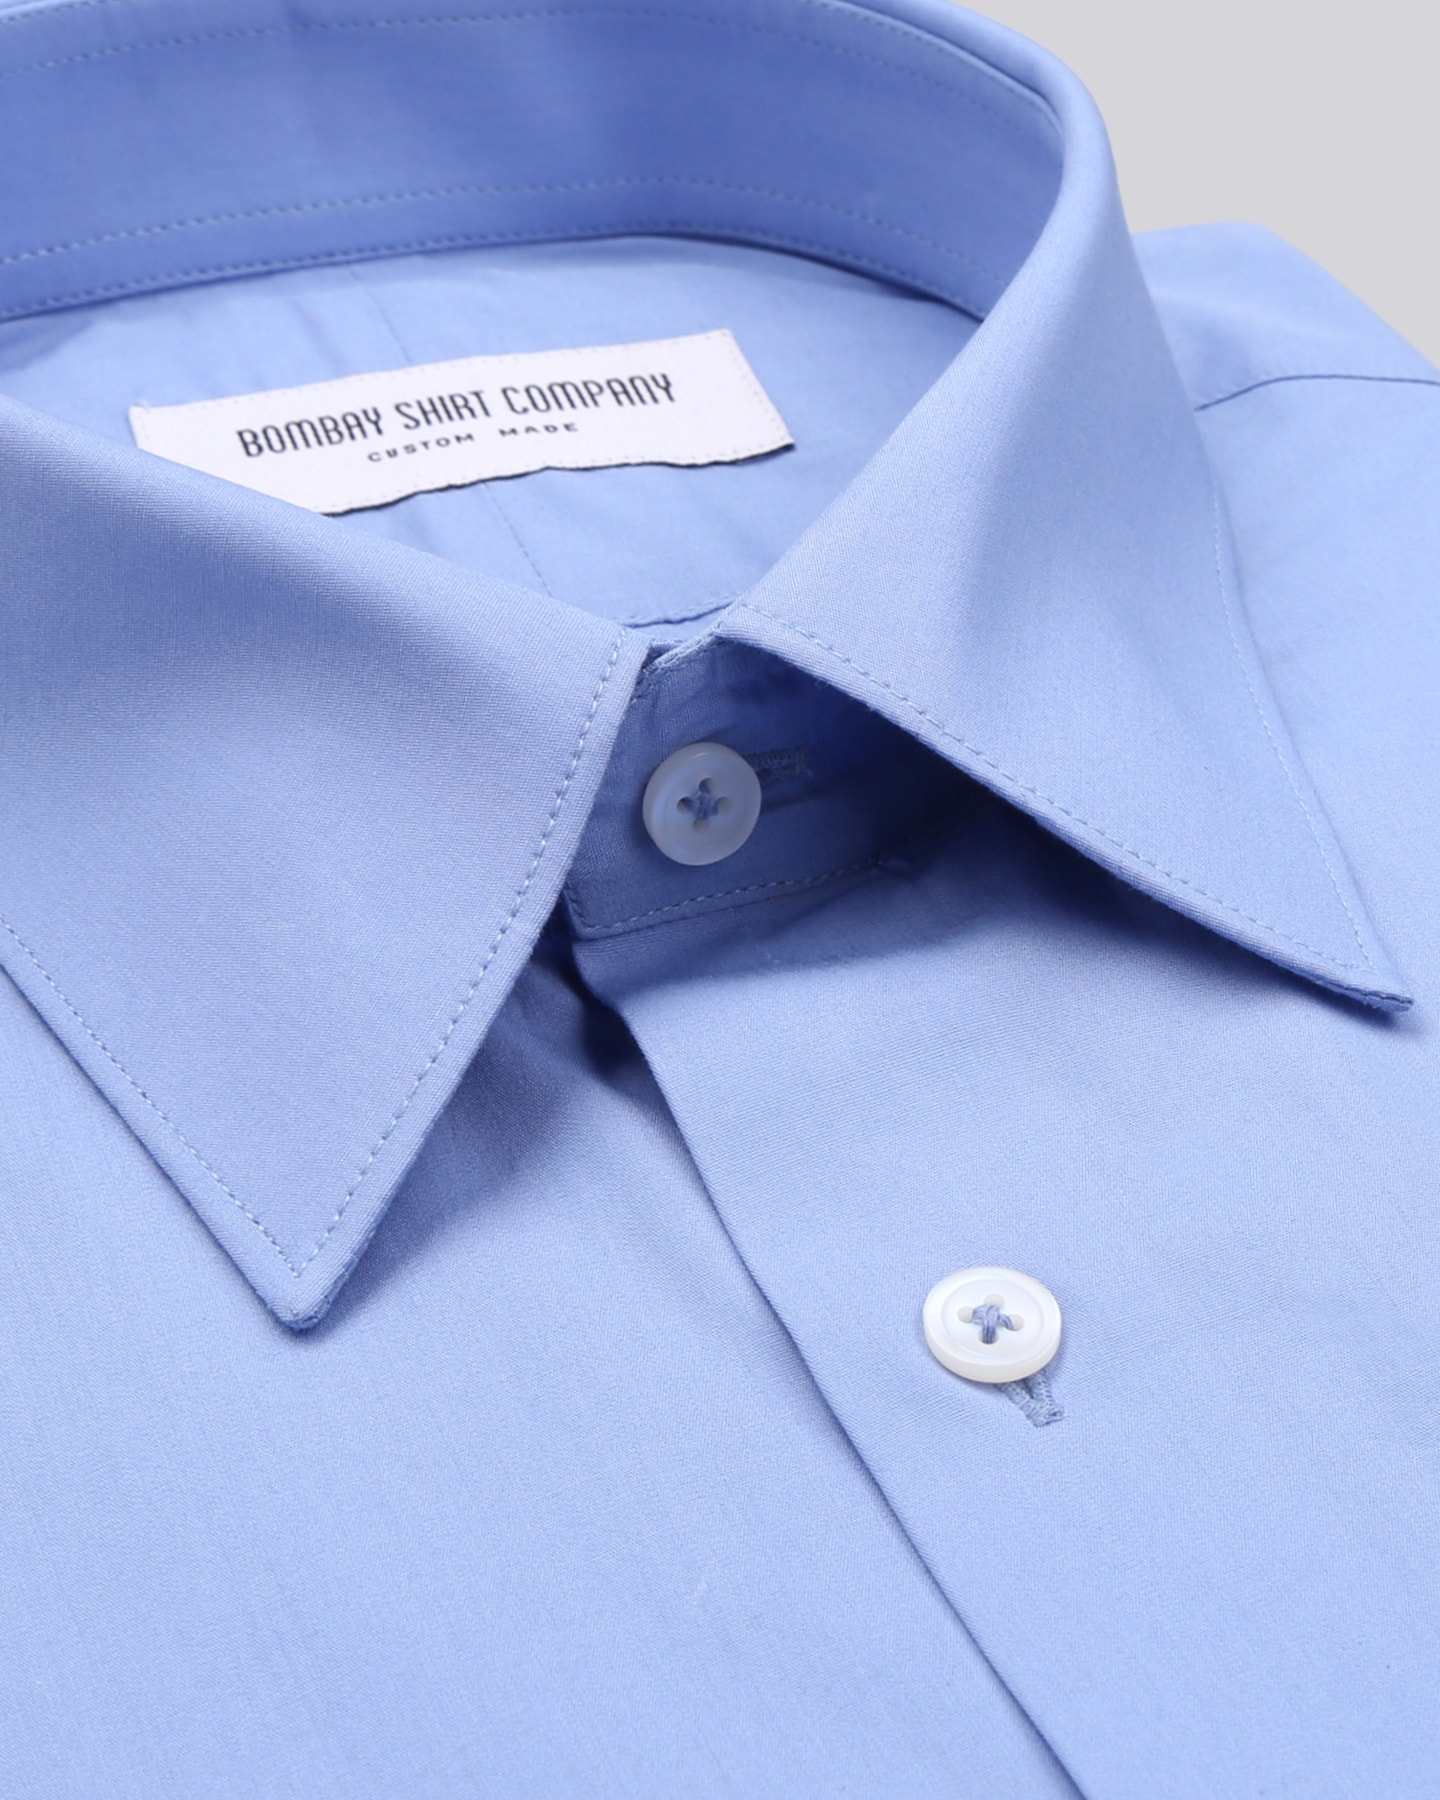 Medium Blue Poplin Shirt